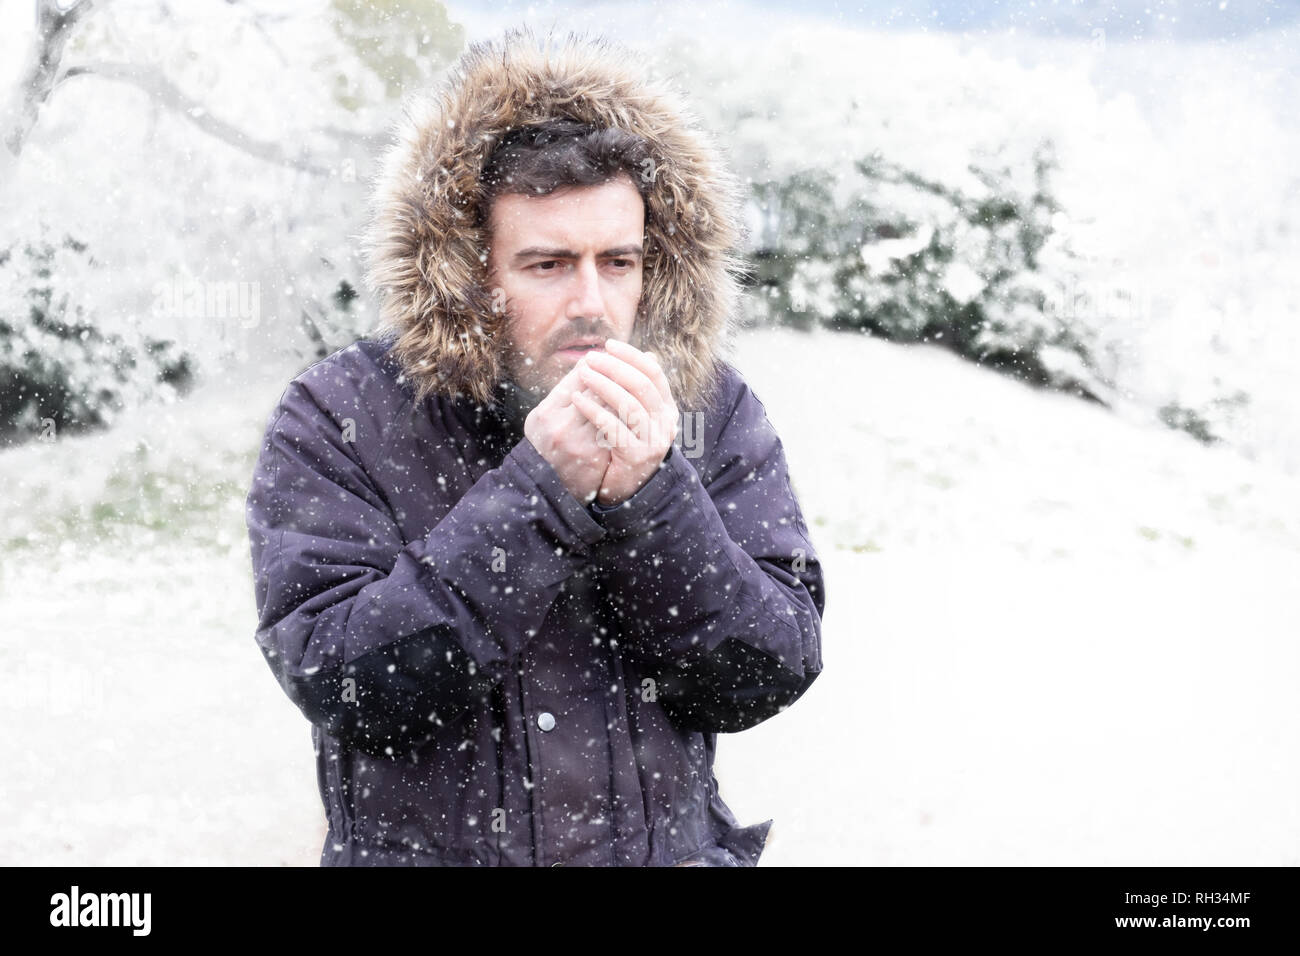 Man in cold and snowy weather storm in winter - Stock Image